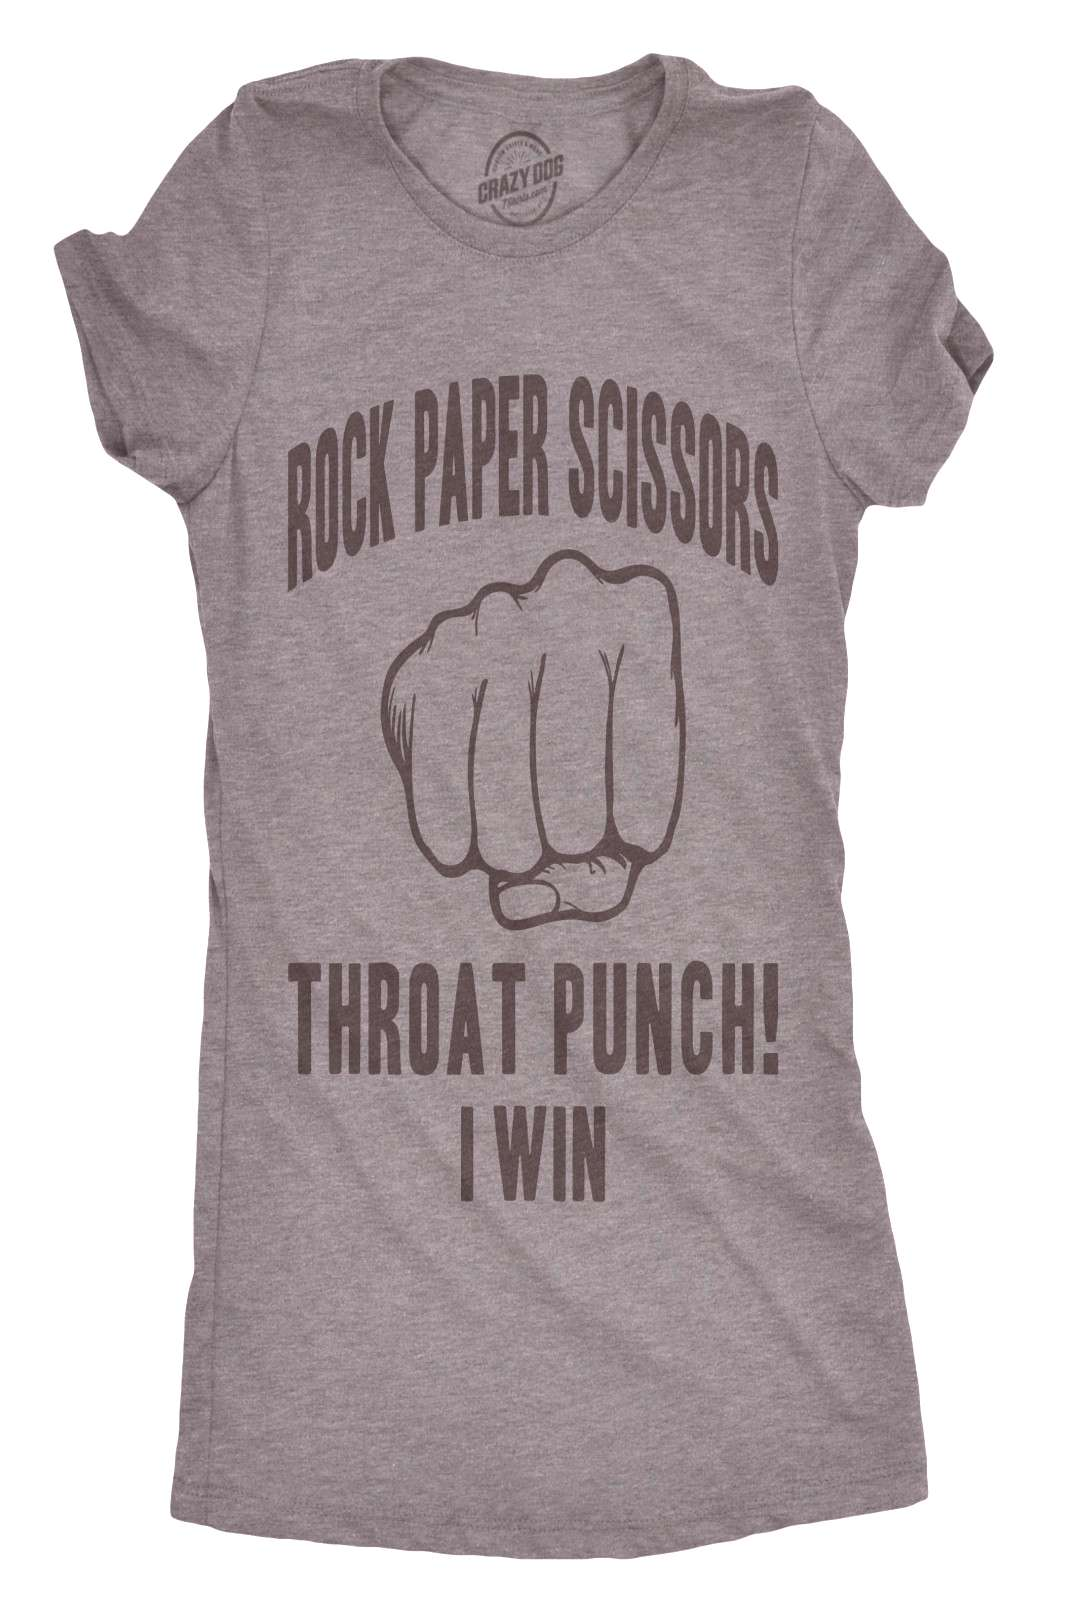 Free 2-day shipping. Buy Womens Rock Paper Scissors Throat Punch Tshirt Funny Sarcastic Mocking Tee